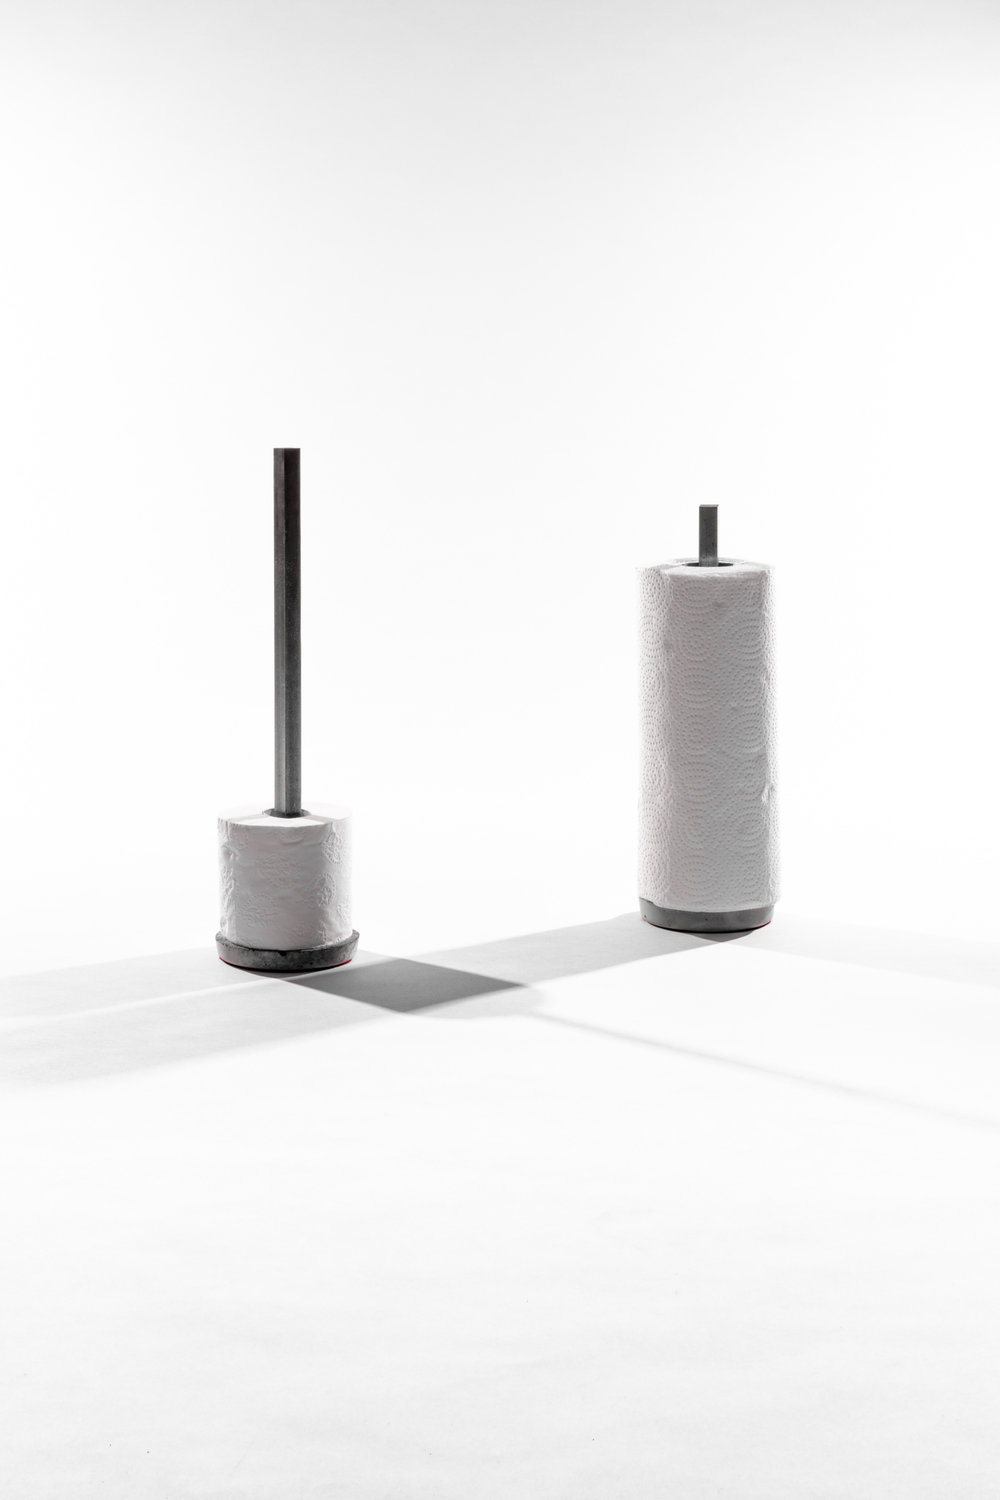 Concrete-toilet-paper-holder-Lalaya-Design-with-rolls.jpg